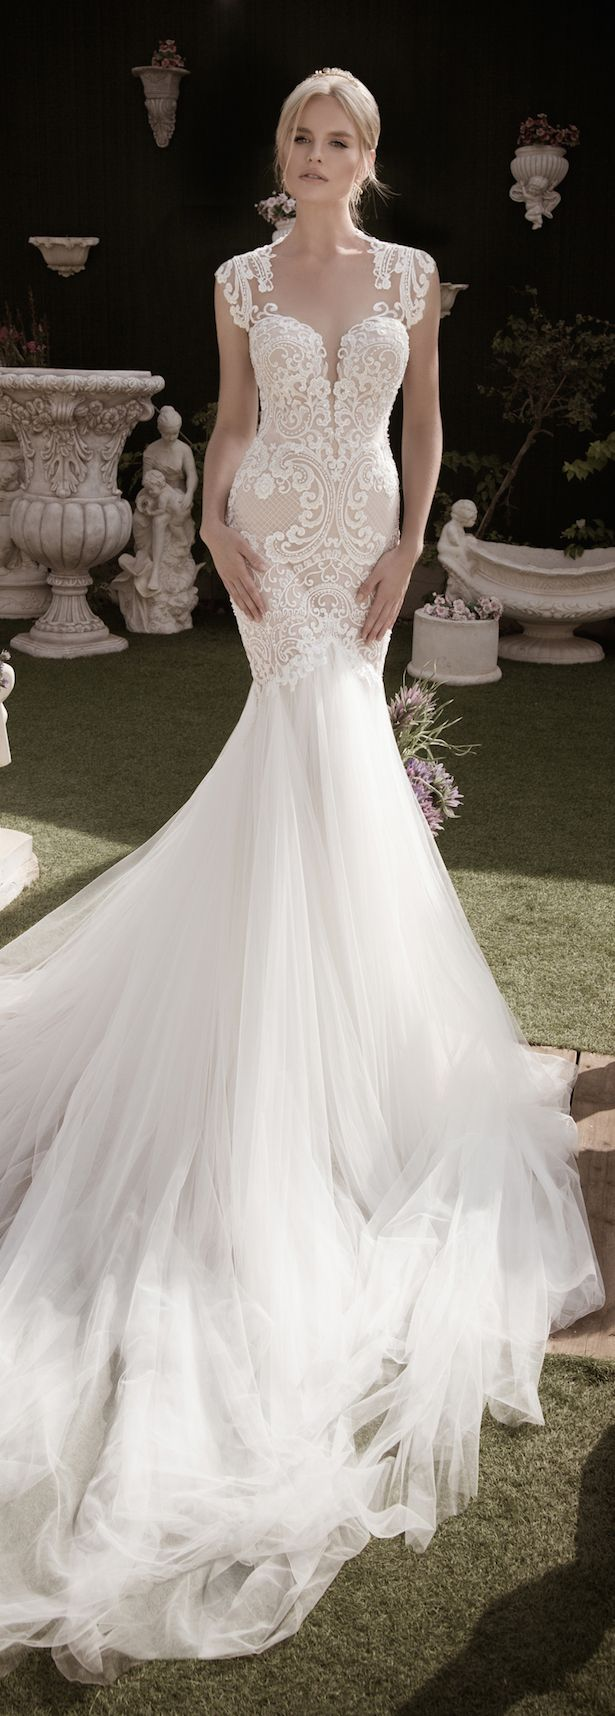 Naama & Anat Wedding Dresses Fall/Winter 2016 #coupon code nicesup123 gets 25% off at www.Provestra.com www.Skinception.com and www.leadingedgehealth.com